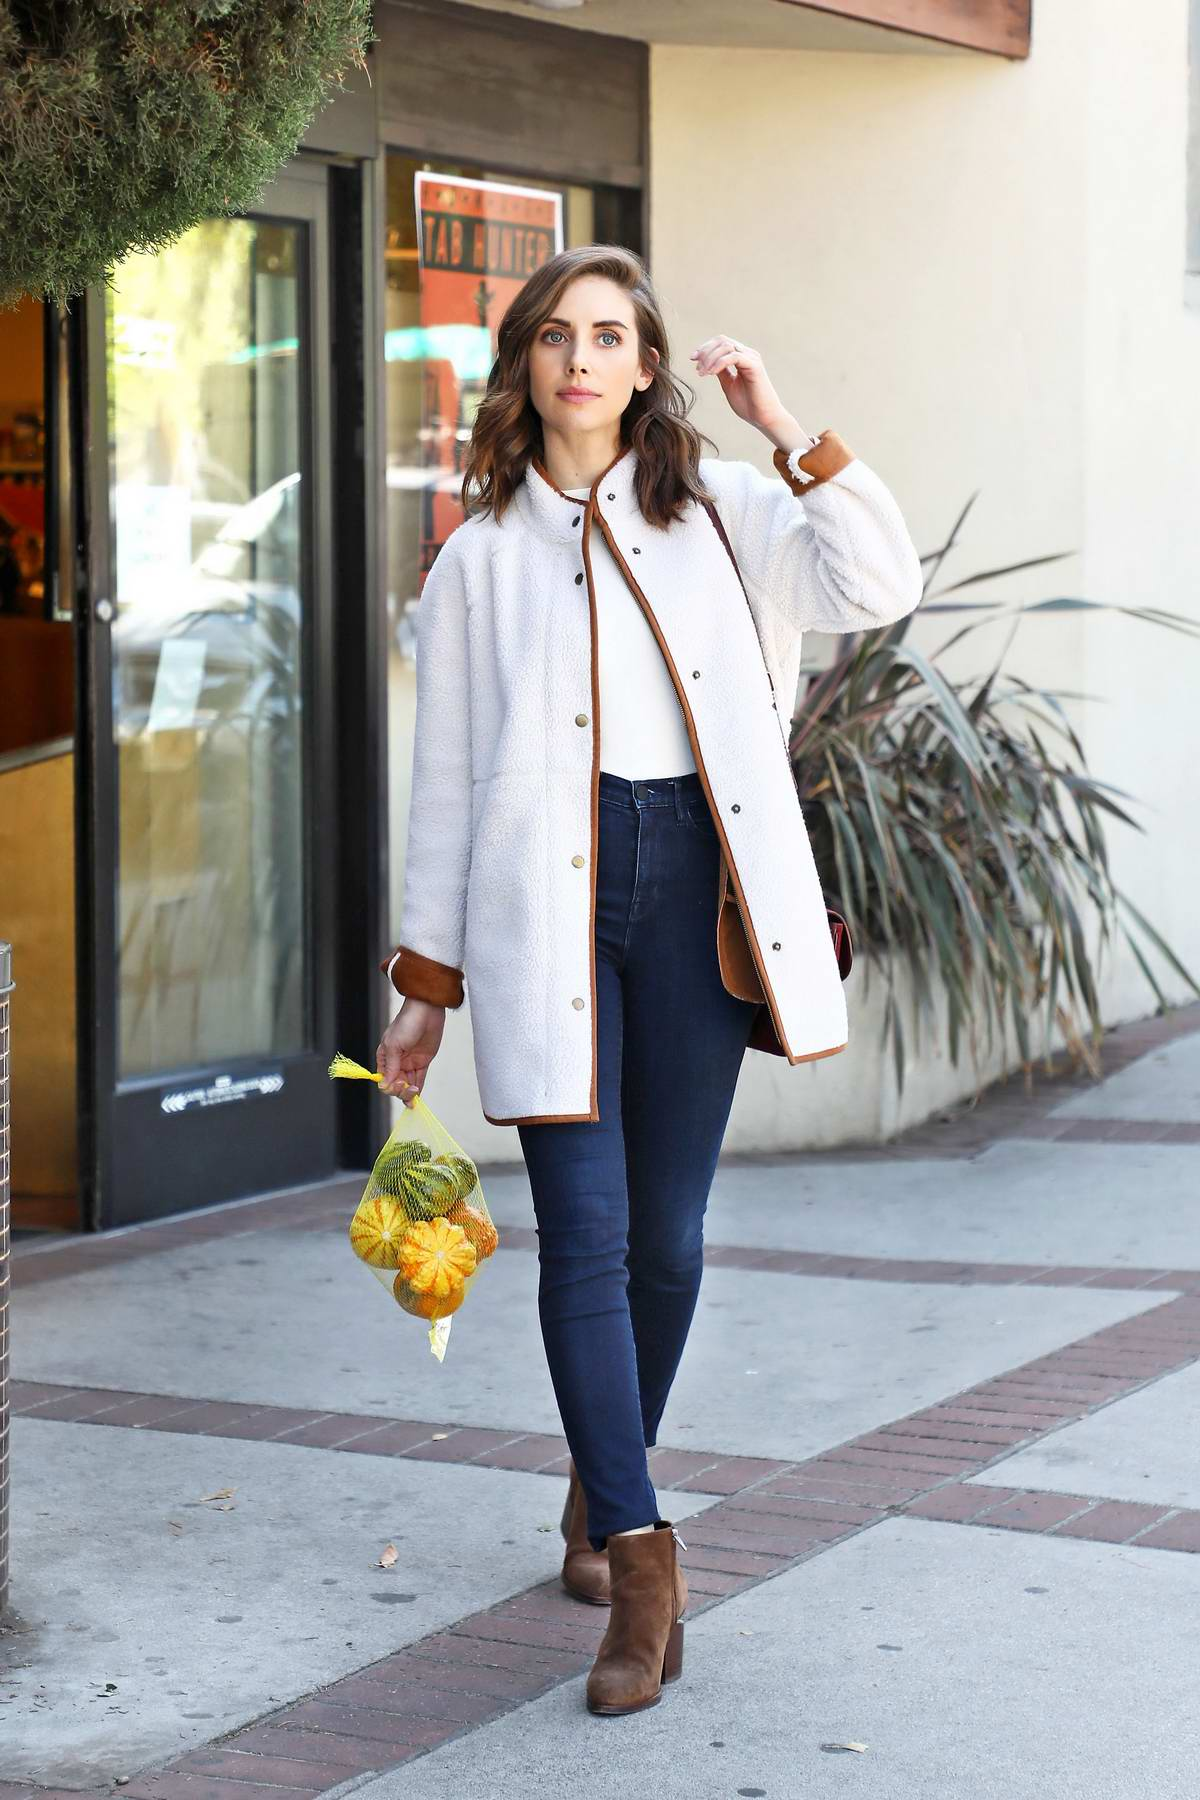 Alison Brie looks lovely in a white sherpa coat and jeans while shopping for some pumpkins at a market in Los Angeles